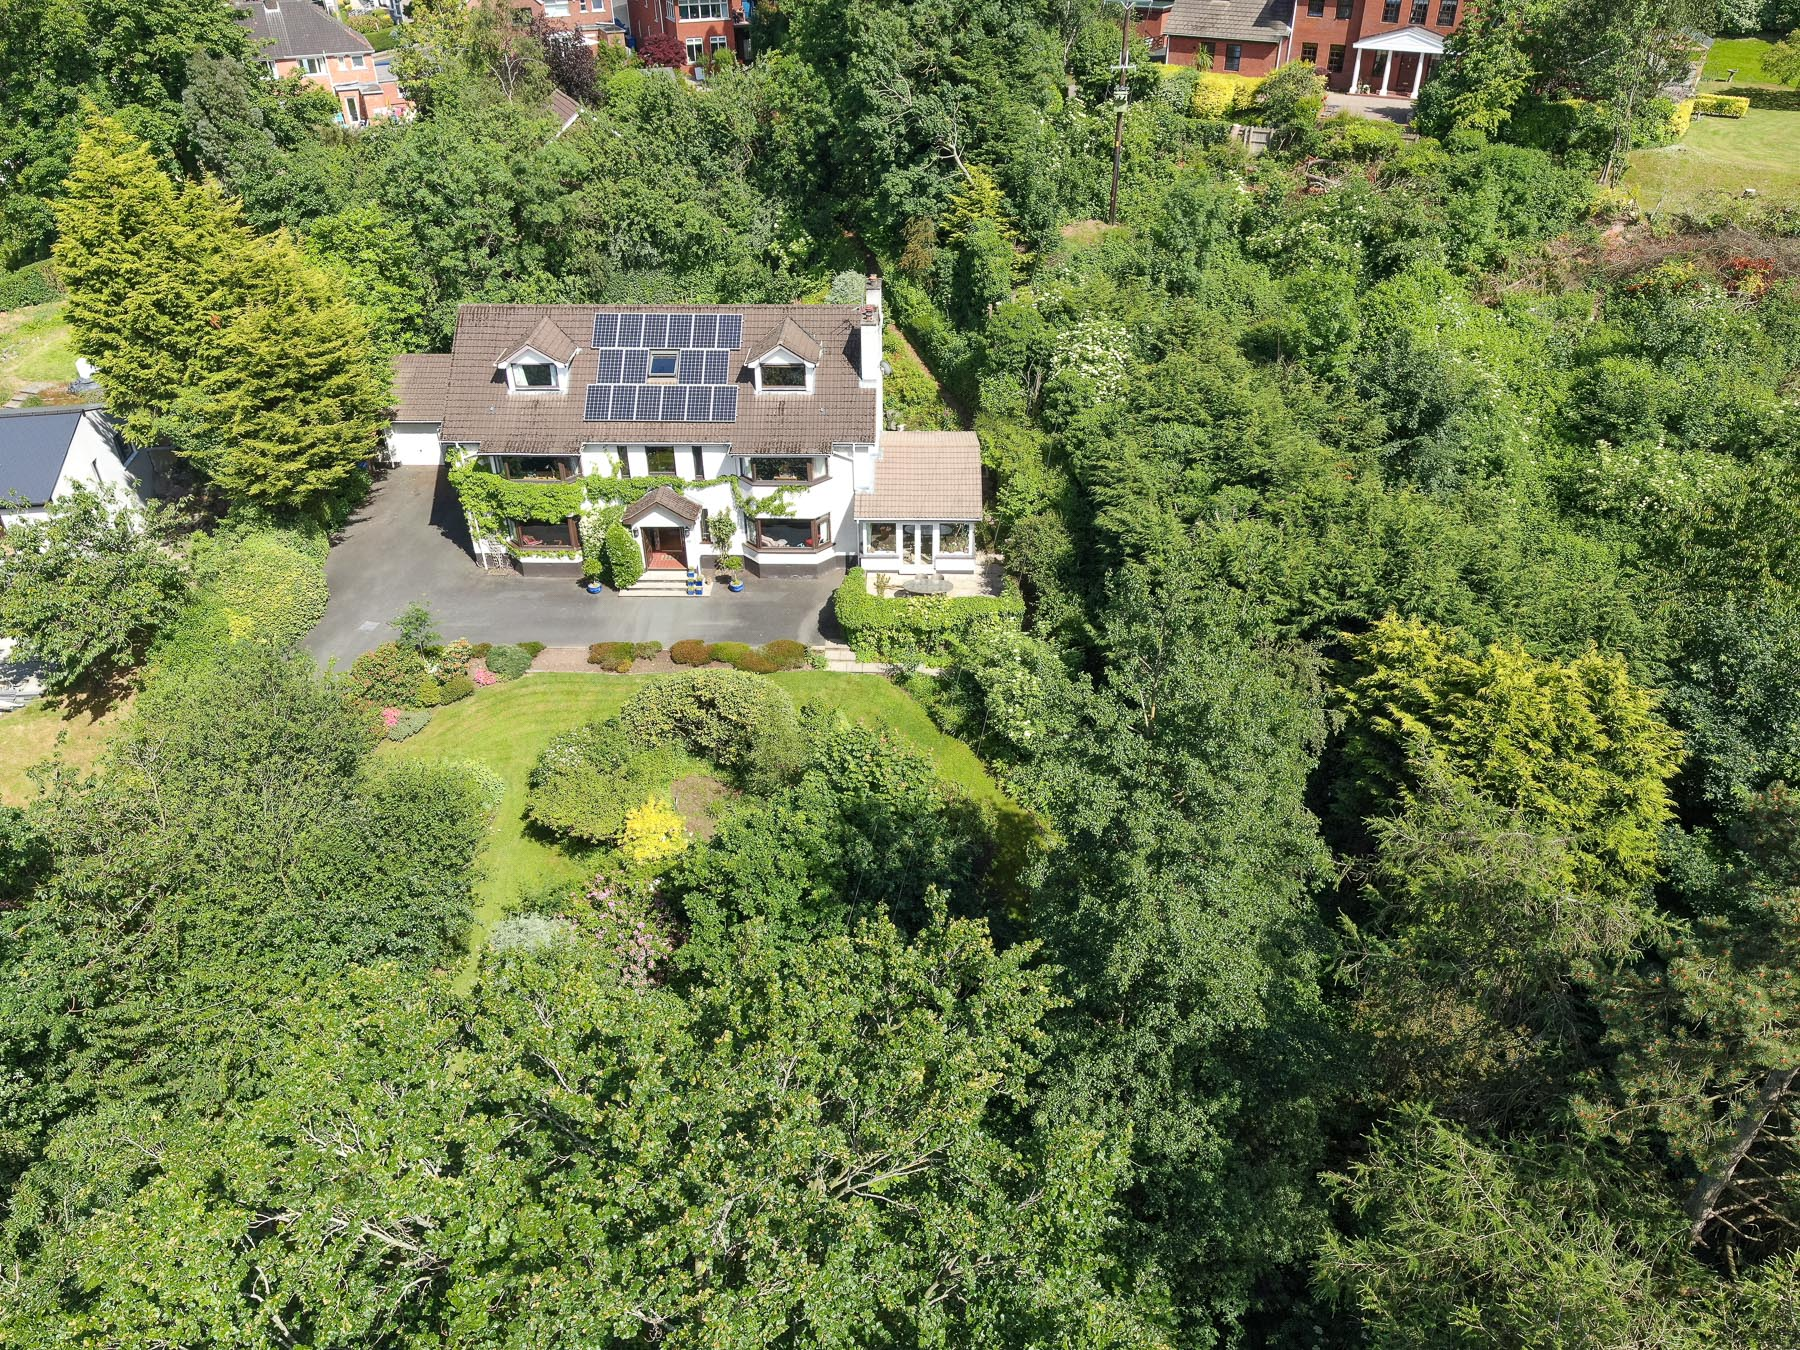 Aerial drone photography and video production services Dublin and Ireland portfolio - residential photography of Glenside, Northern Ireland. Photo 0021